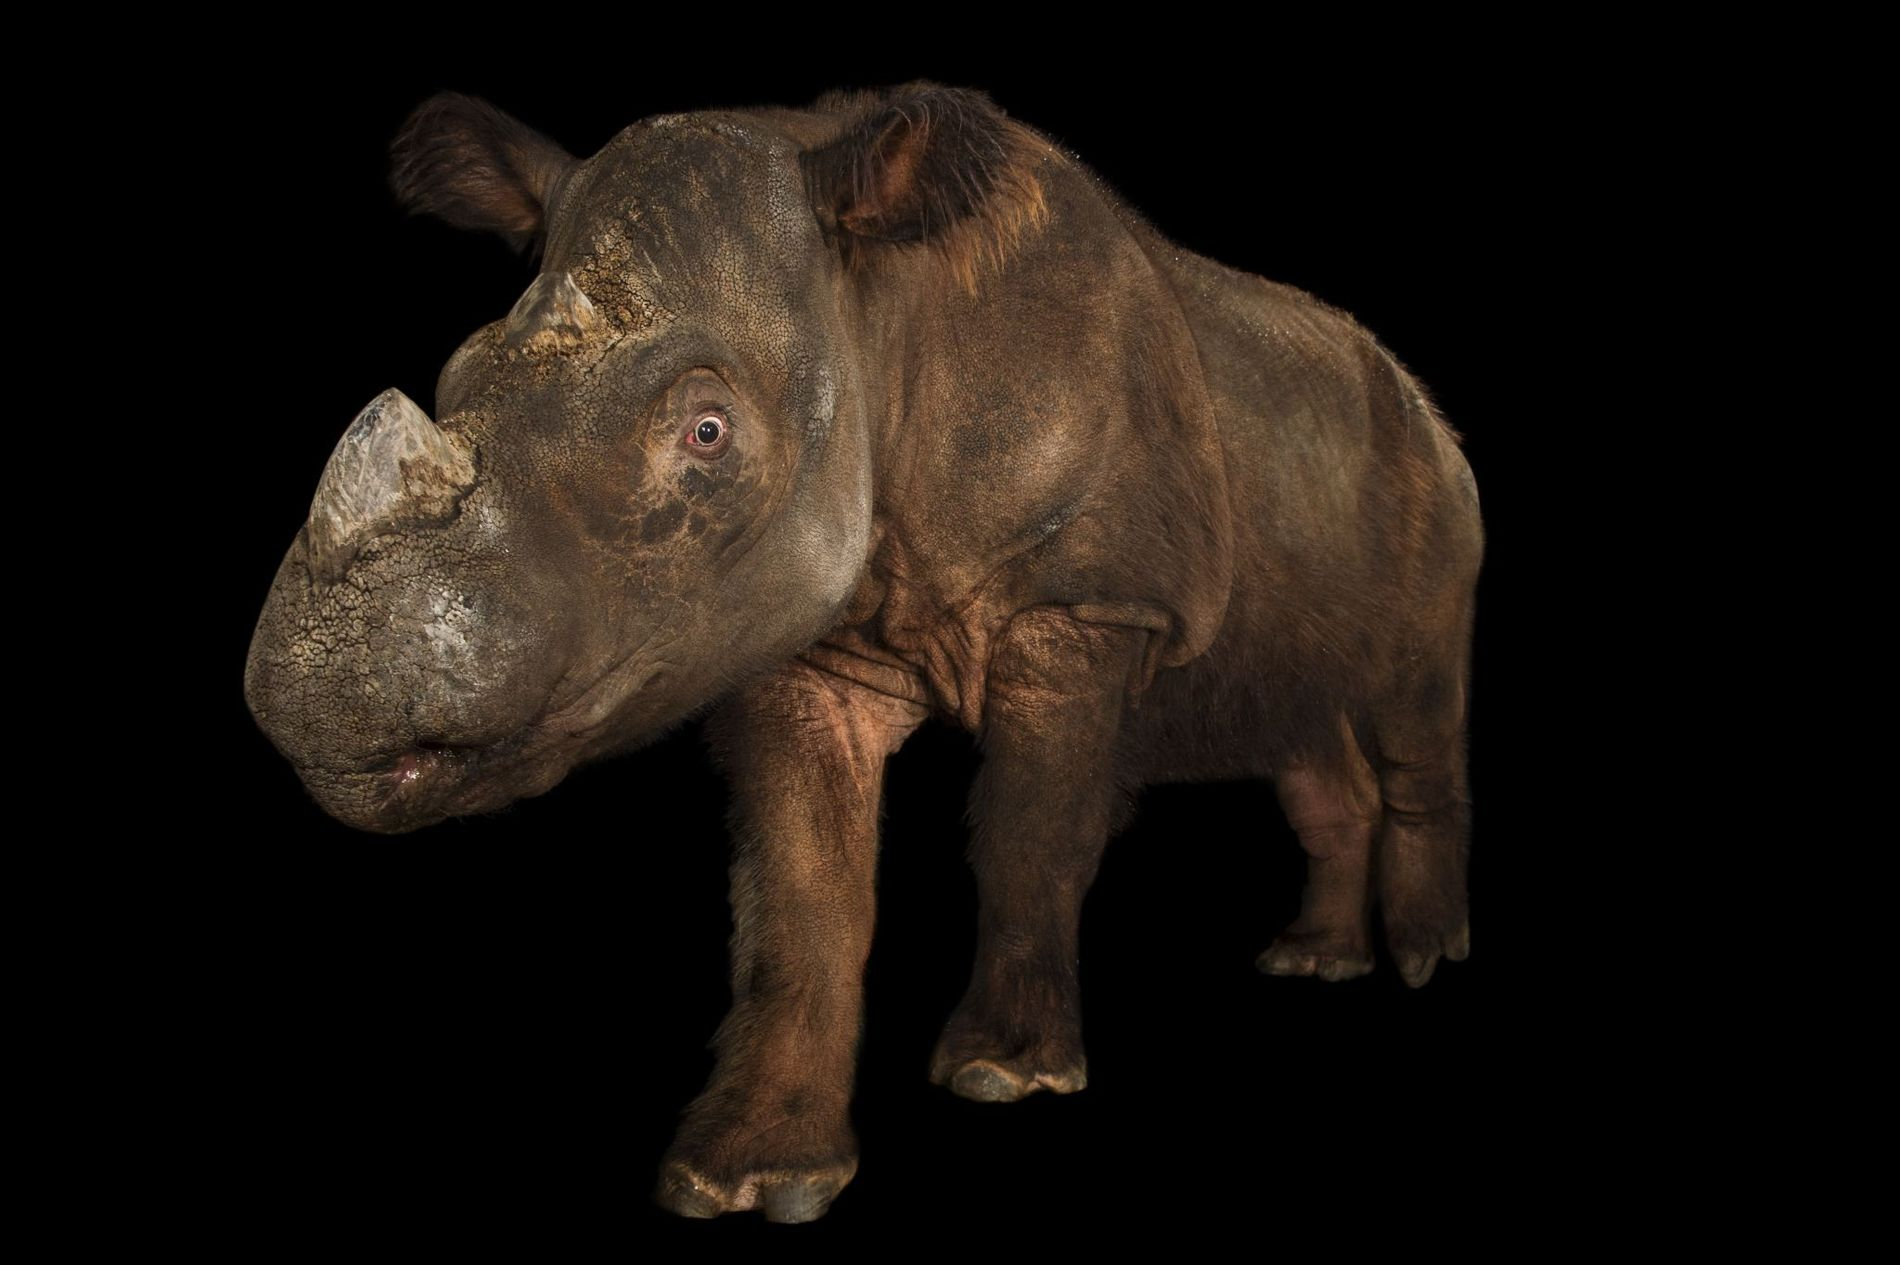 This critically endangered Sumatran rhinoceros was photographed at Cincinnati Zoo in Ohio. In the wild, there ...